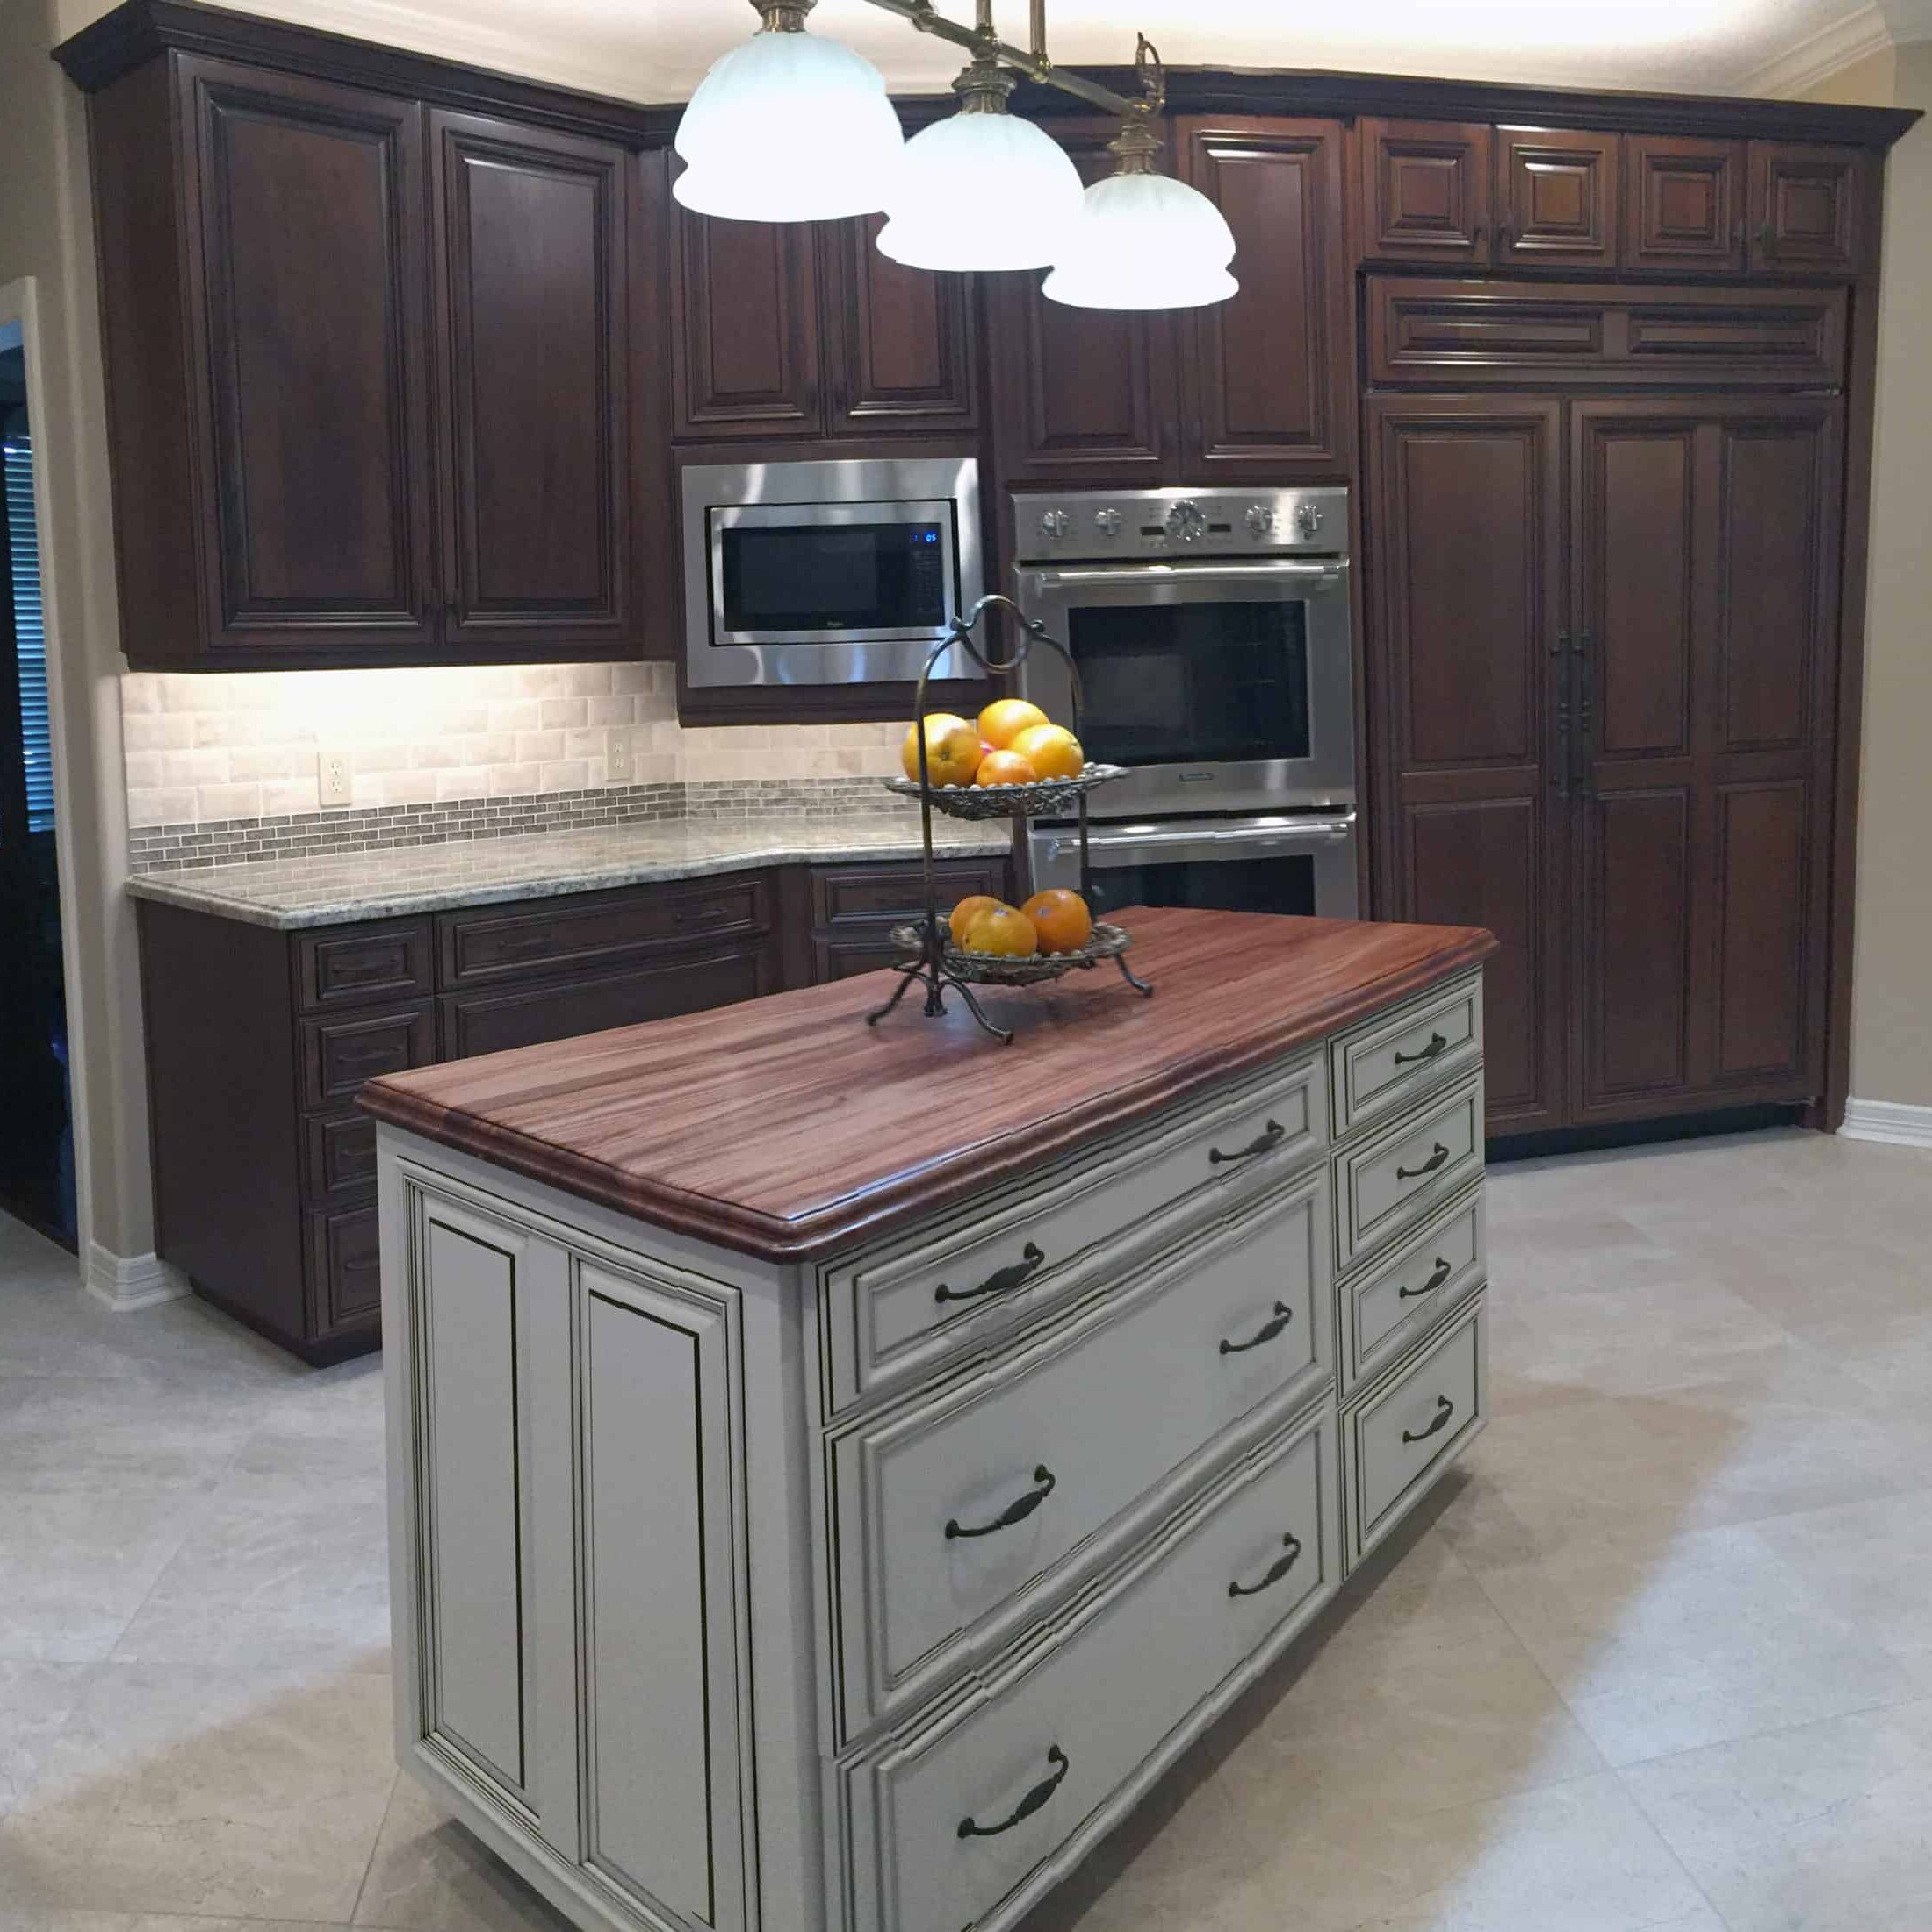 Kitchen Remodel in Eagle Lakes (Friendswood, TX)